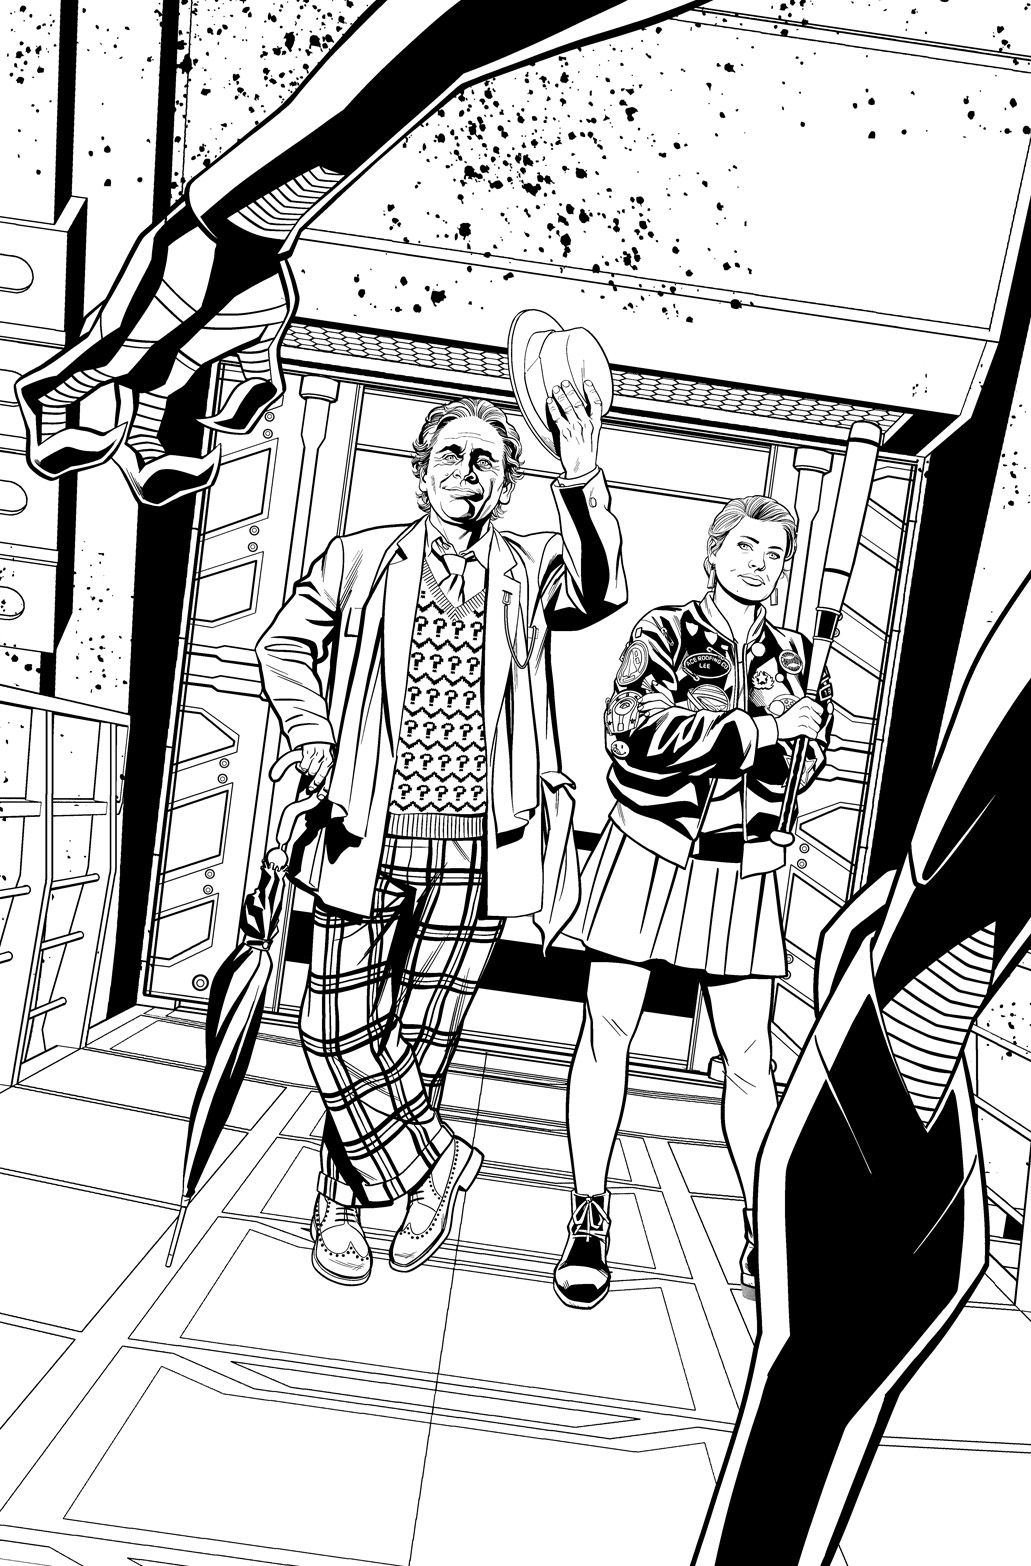 Doctor Who: The Seventh Doctor #1DOCTOR_WHO_7D_BLACK_AND_WHITE_PROMO_ART.JPG (Credit: Titan )